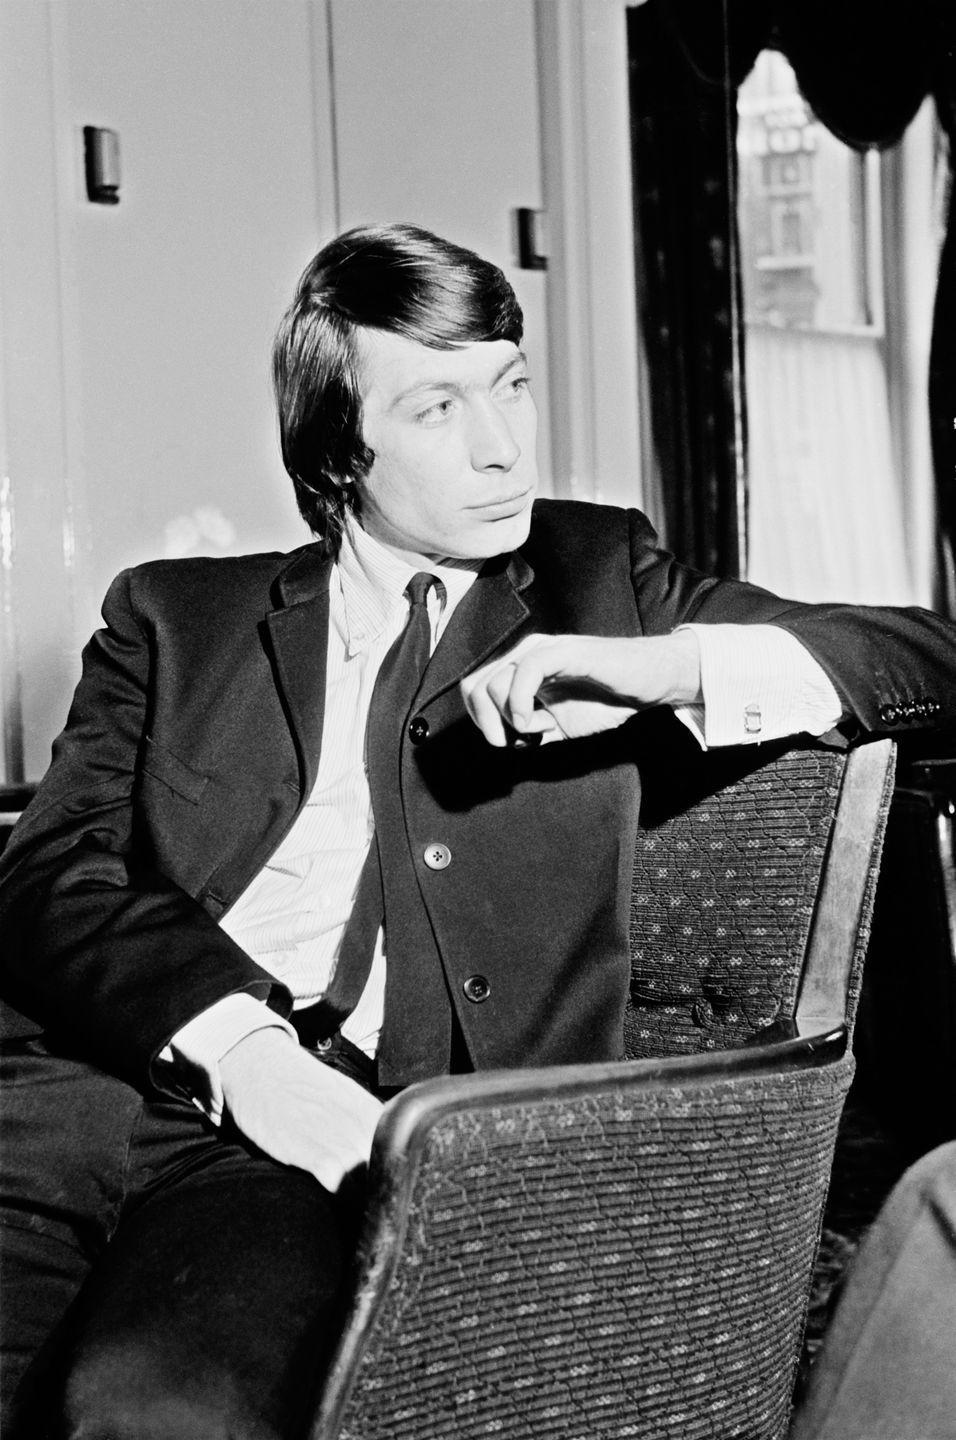 <p>Charlie Watts from The Rolling Stones posed at the Midland Hotel in Manchester, England on 7th March 1965.</p>